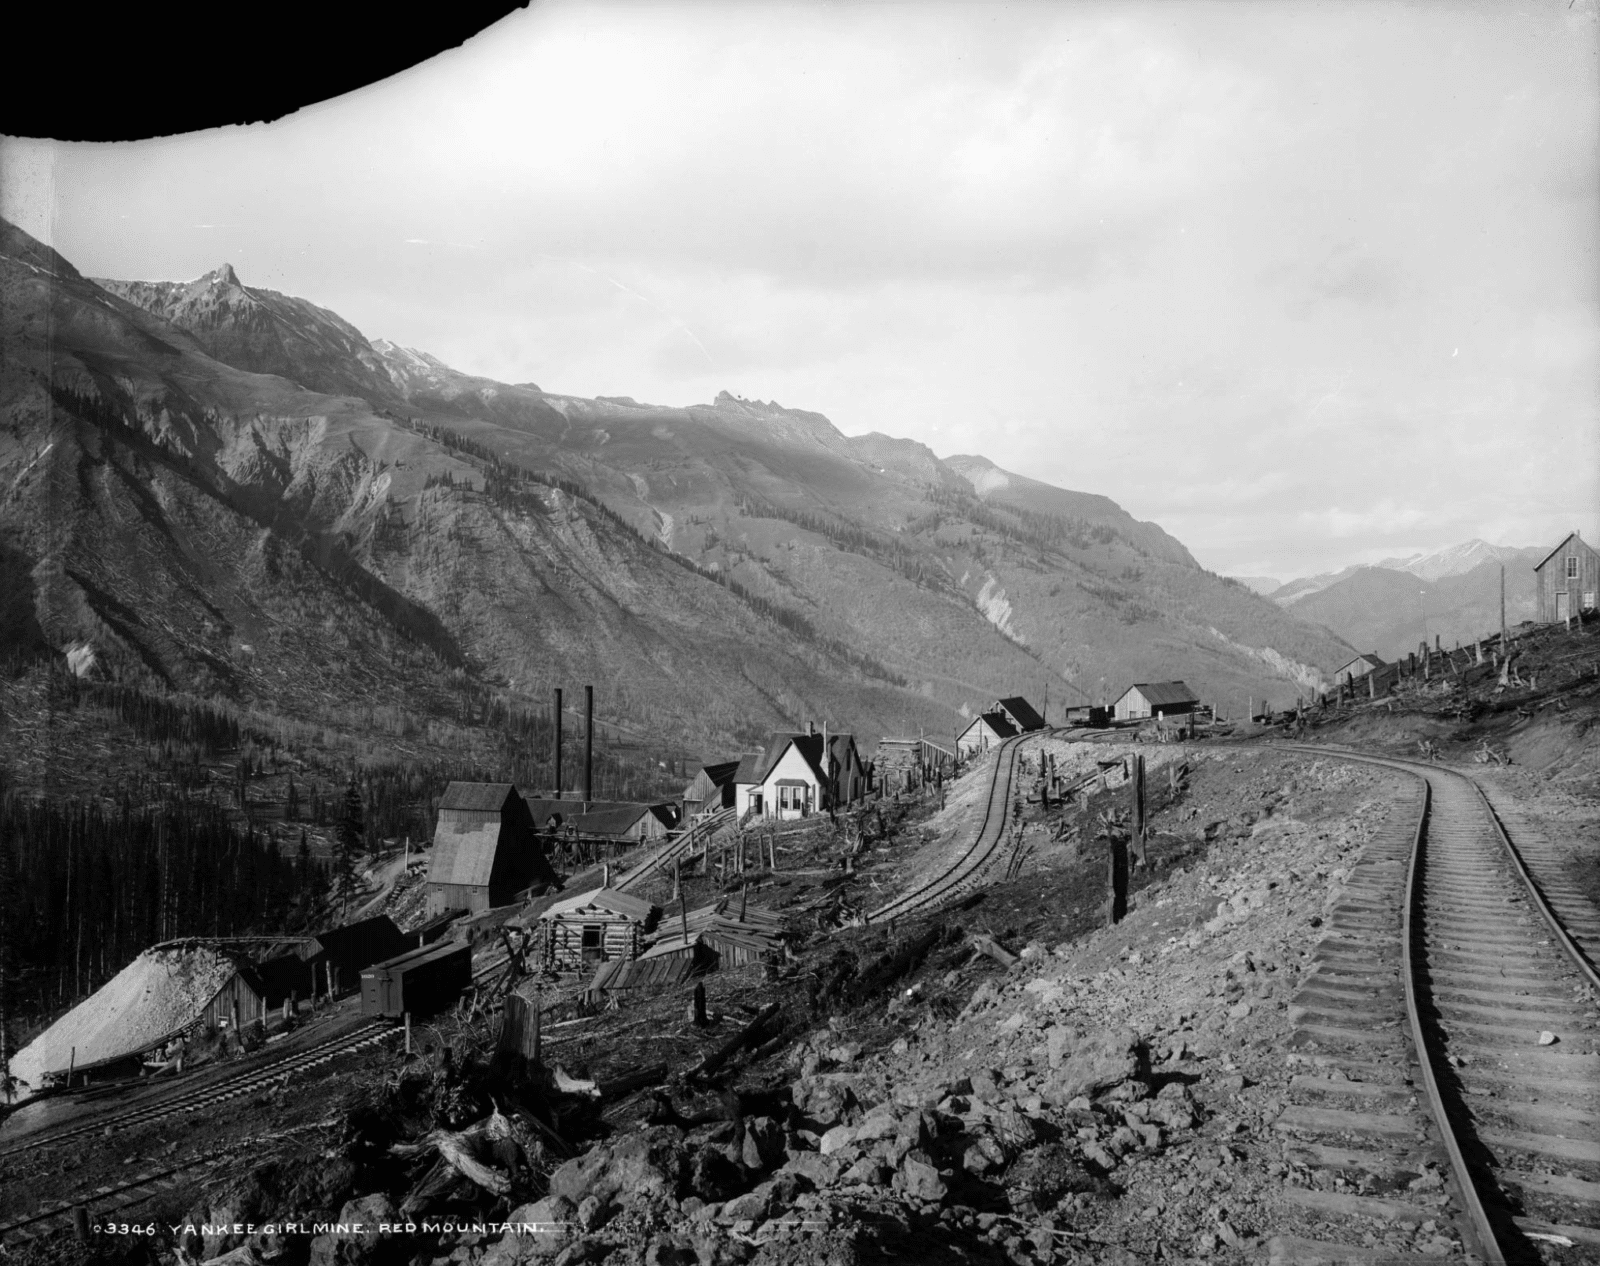 Image of the Red Mountain Pass c. 1889 near Guston, Colorado